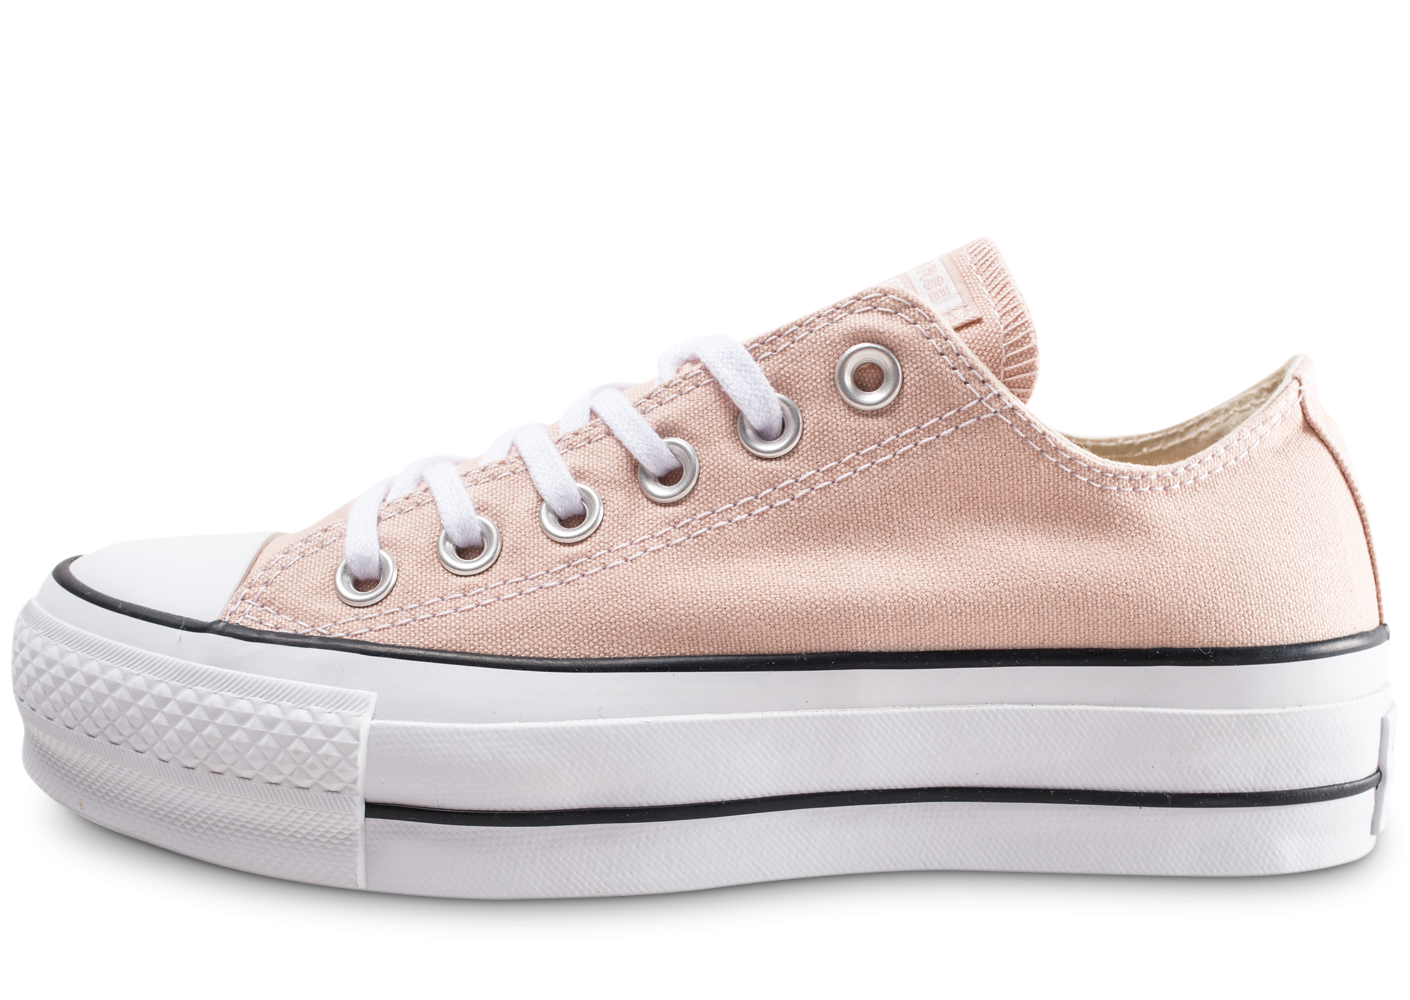 Converse Chuck Taylor All Star Lift beige femme